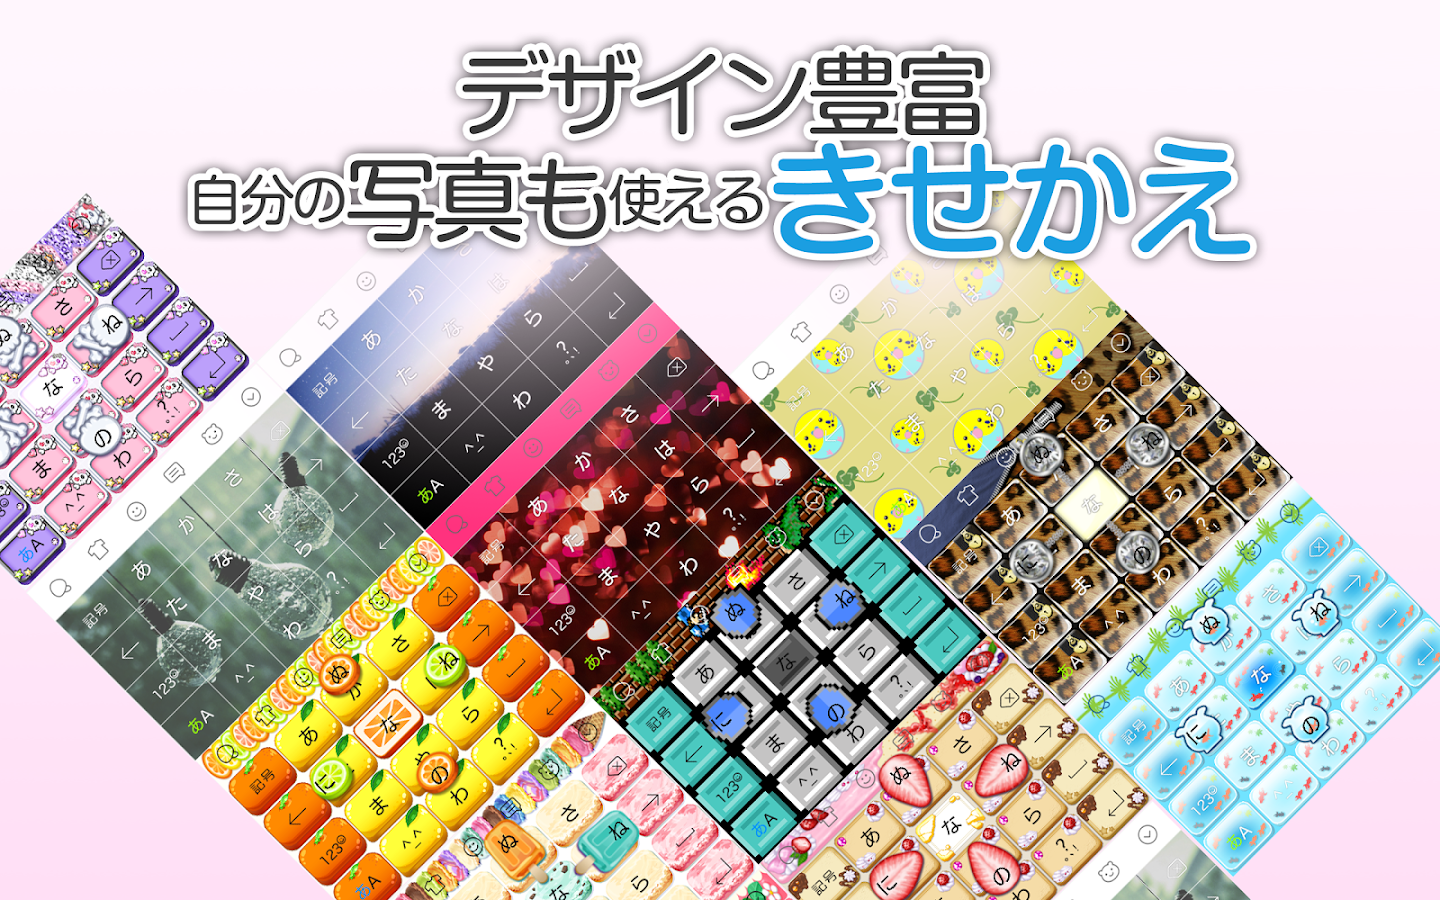 Simeji Japanese keyboard+Emoji Screenshot 7